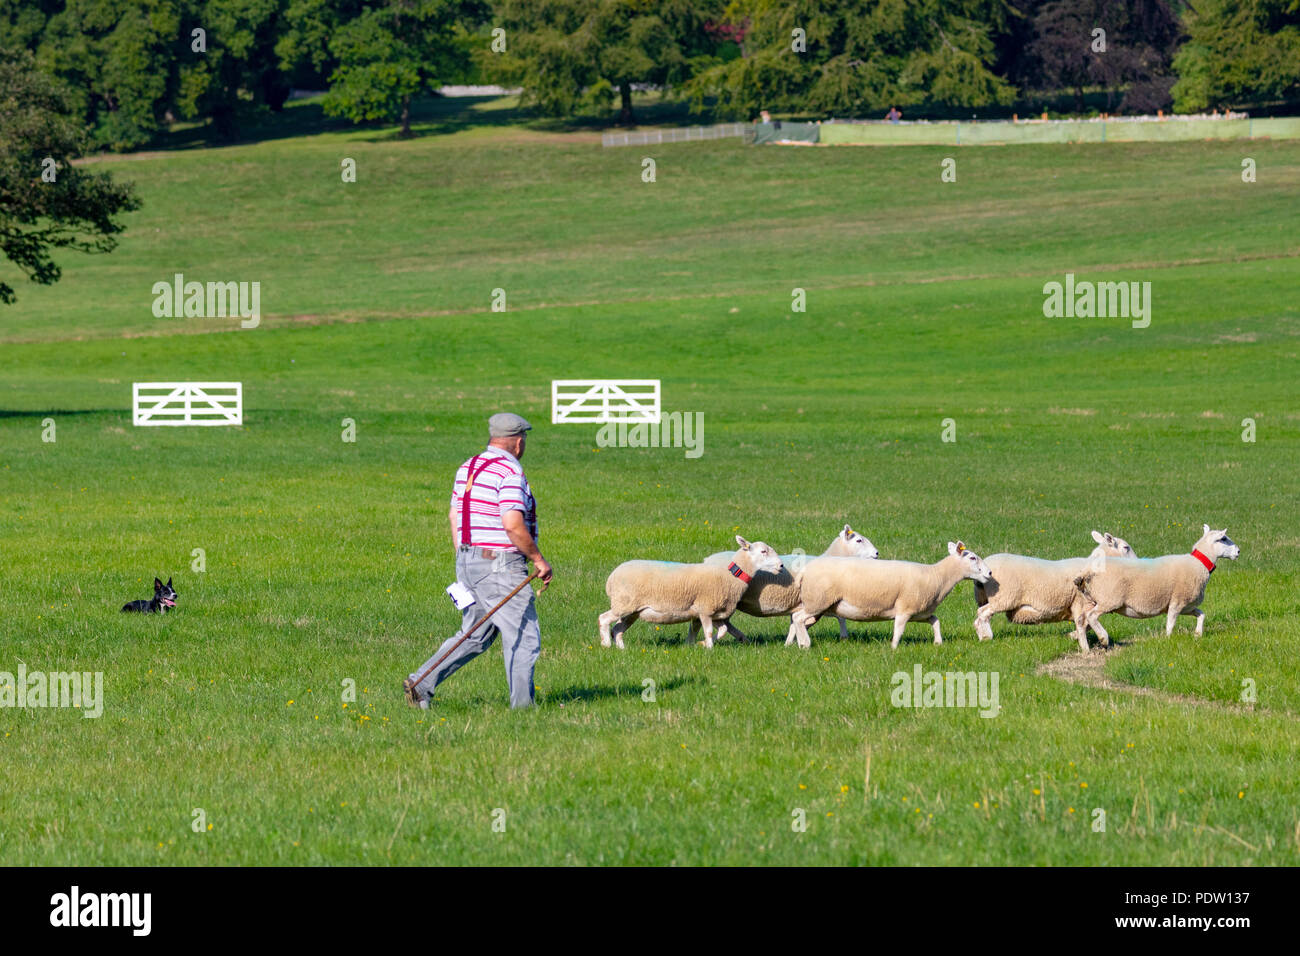 Nannerch, North Wales, 9th August 2018. UK Weather: Hot and sunny weather perfect for the Welsh National Sheep Dog Trials being held in the rural vill - Stock Image